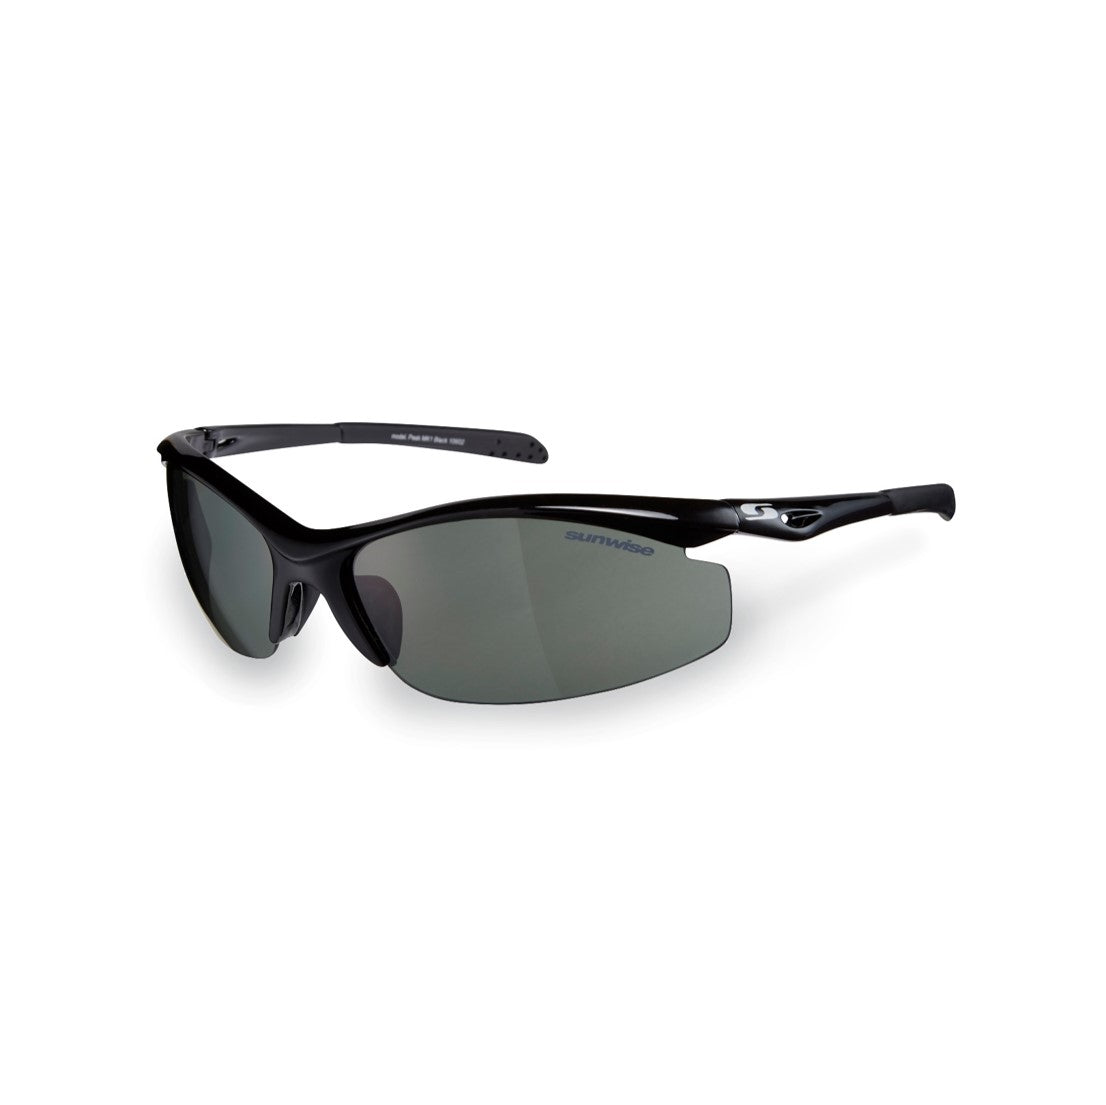 Sunwise - Peak Mk 1 Black - Sports & Outdoor Activity Sunglasses by Sunwise PghSn